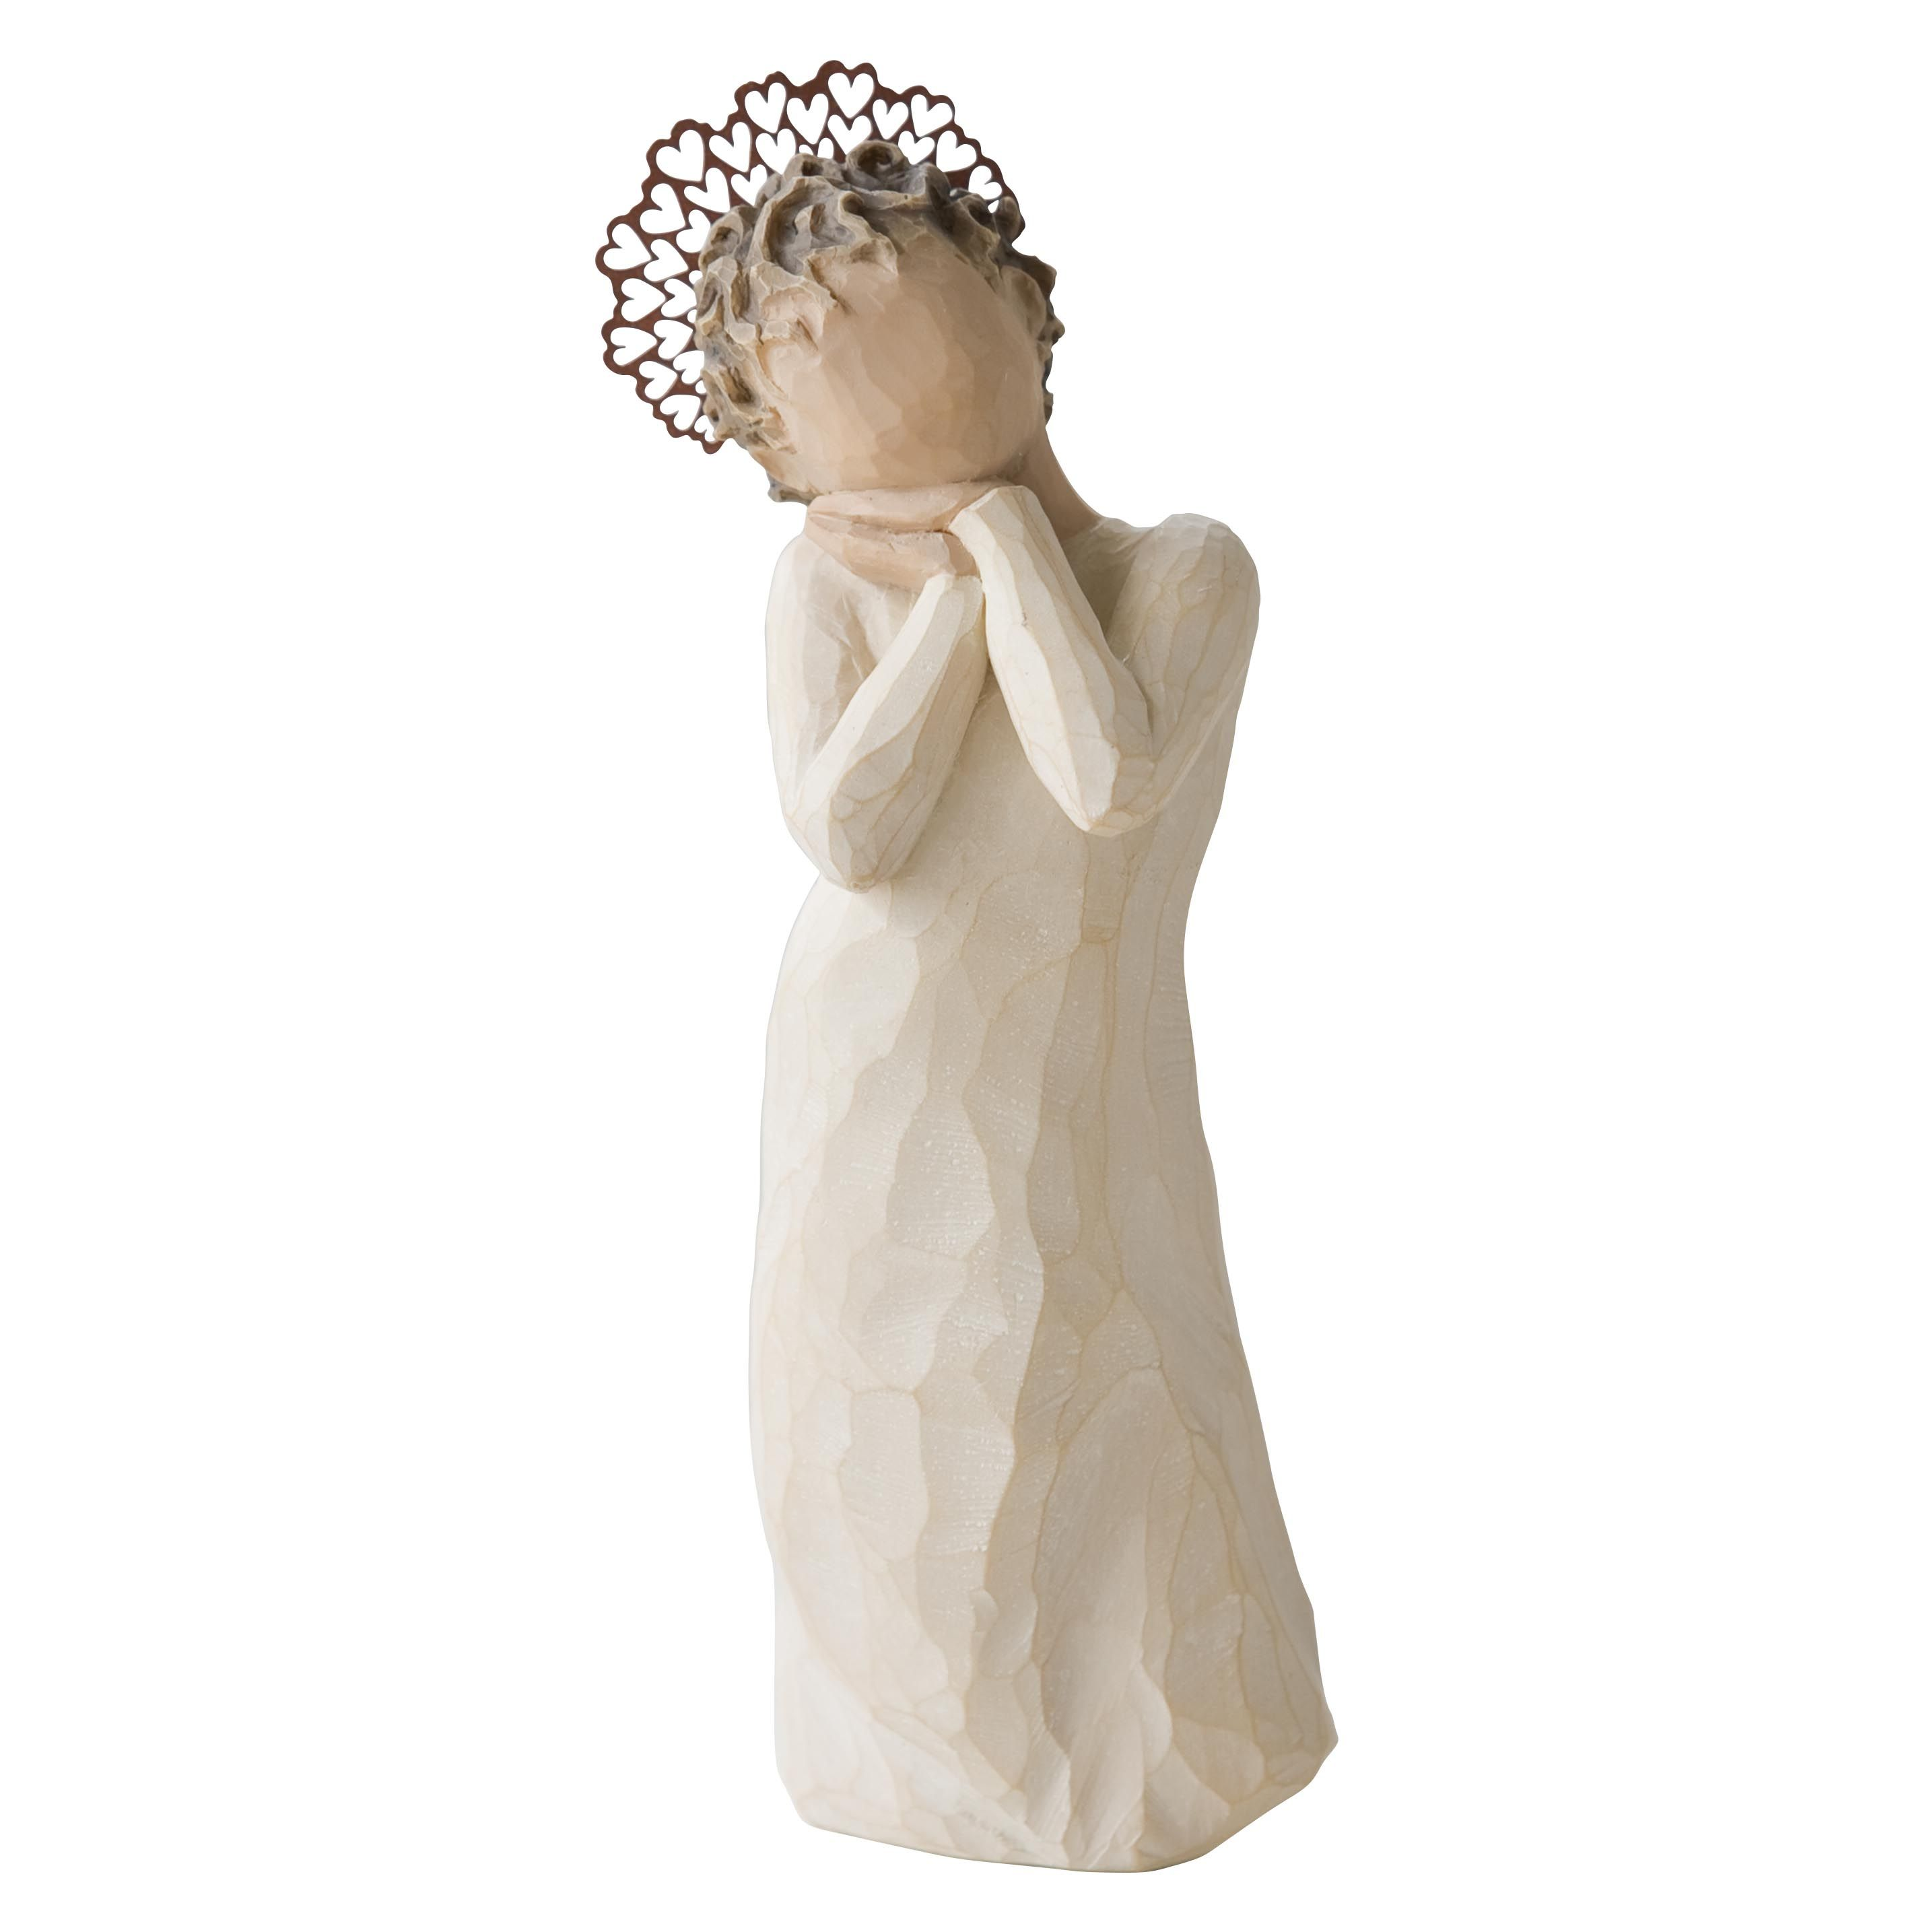 extremely inspiration new home gifts. Beige colored angel figurine that represents love  Measures H Angel Love by Willow Tree Demdaco Home Gifts Decor Decorative Objects Dallas 26234 So happy to and be loved joy WillowTree